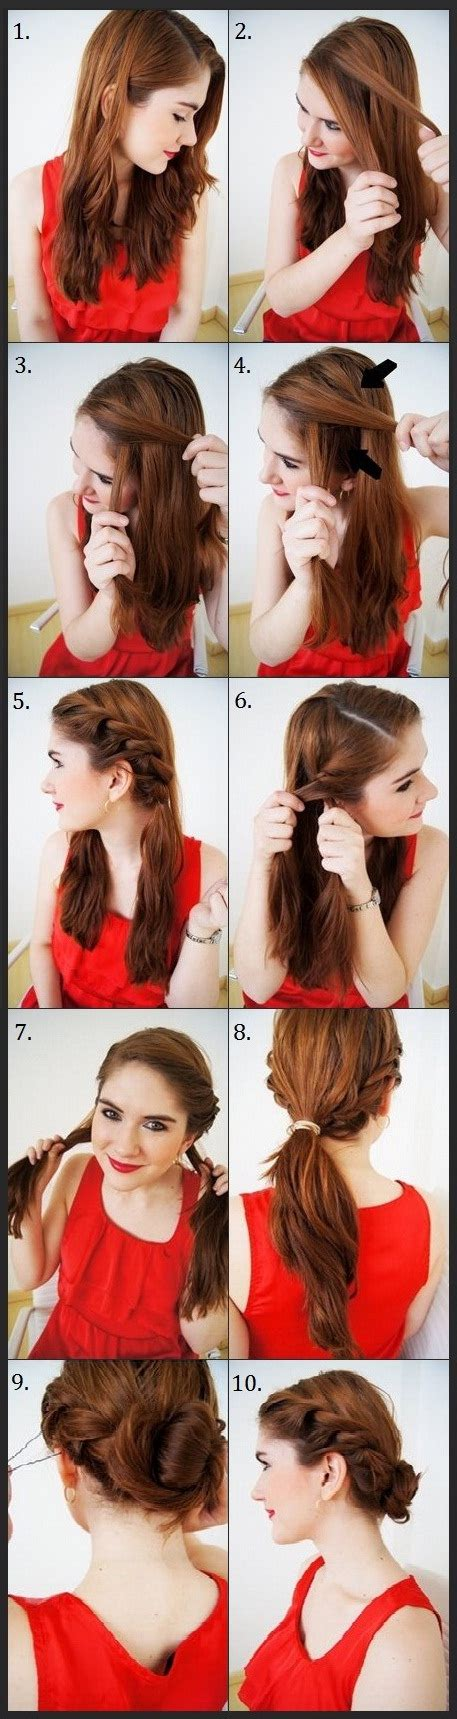 hairstyles for party tutorials 32 amazing and easy hairstyles tutorials for hot summer